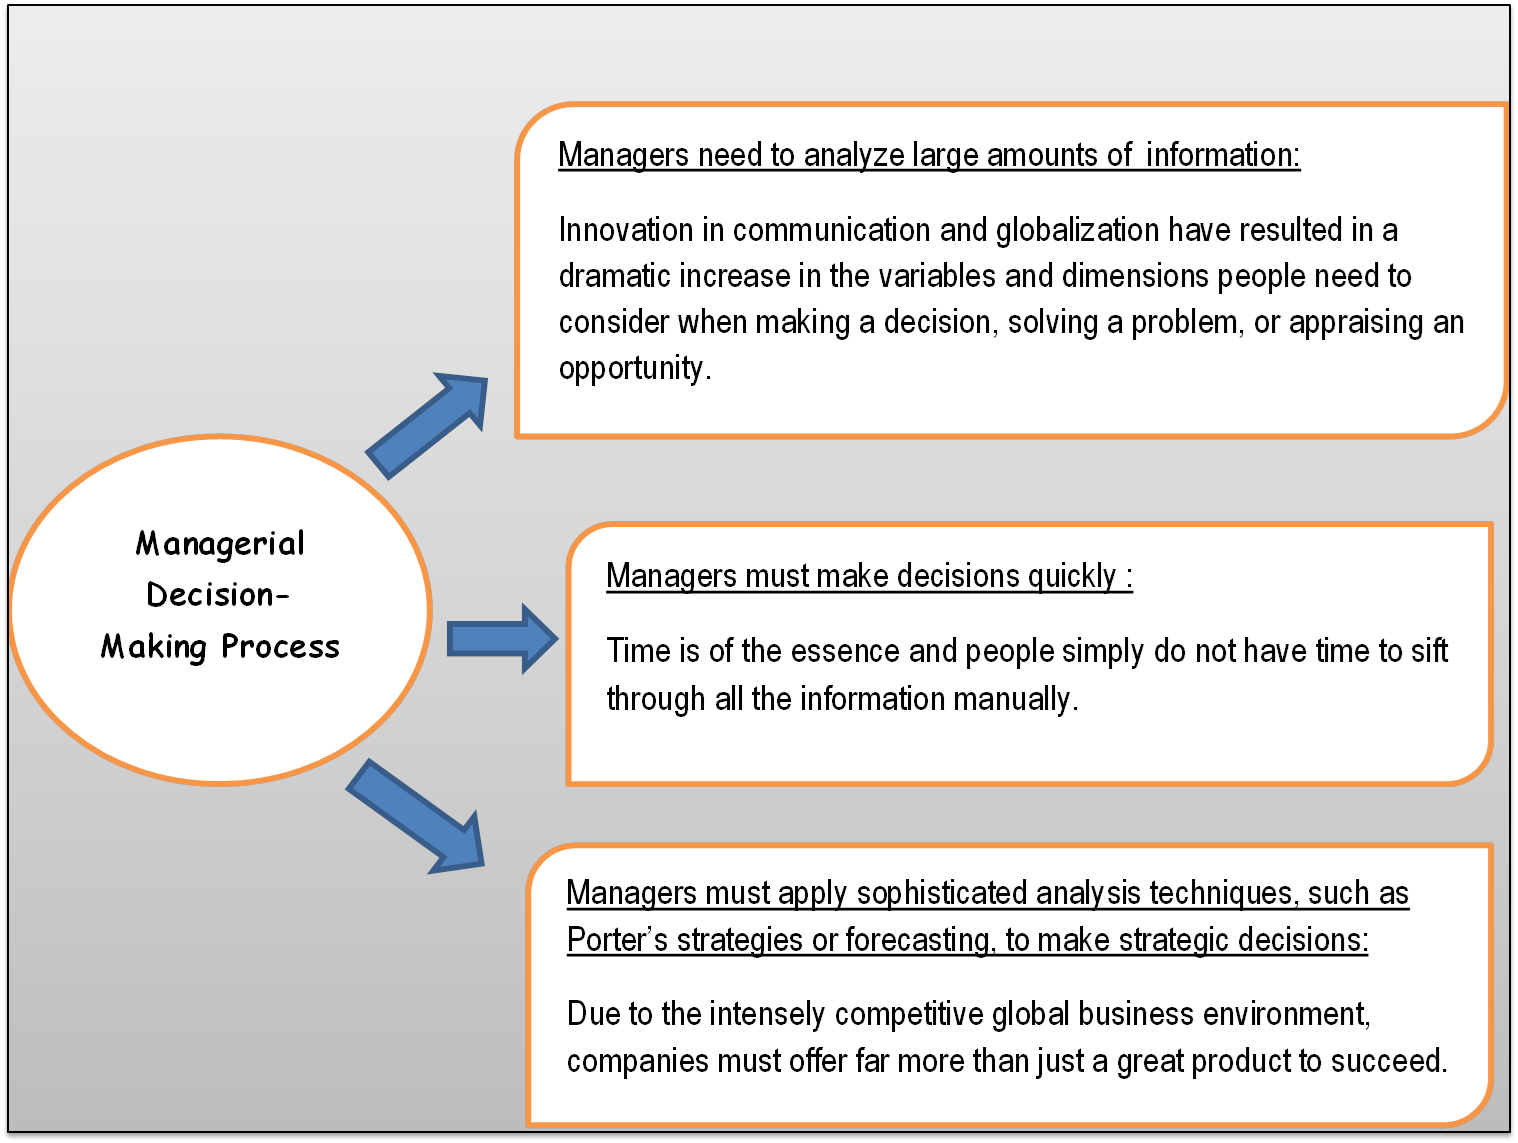 decision making and sound business decision This perspective explores the dynamics of make-or-buy decisions and presents a framework to help companies make the right decisions the framework is built on three key pillars — business strategy, risks, and economic factors.